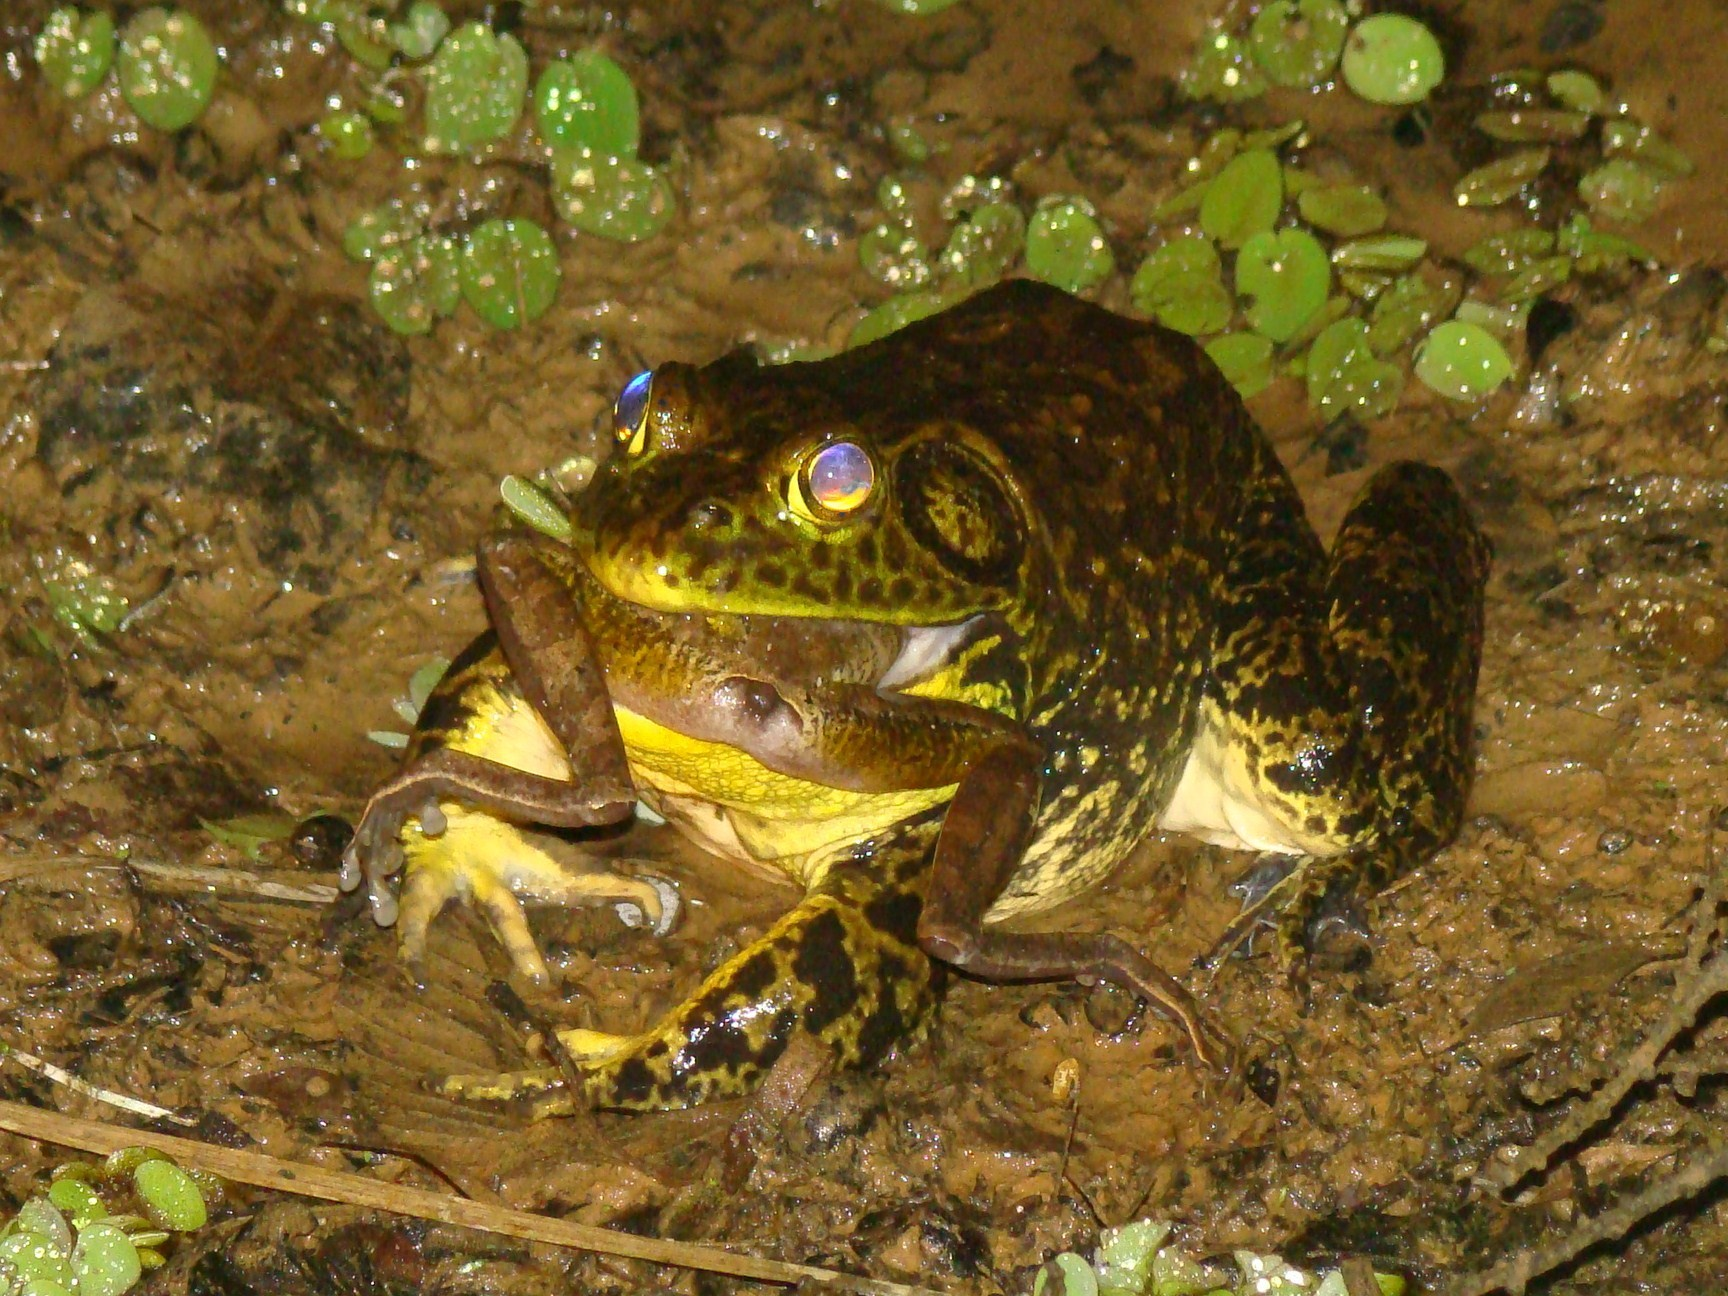 A bullfrog devouring another frog in Brazil's Atlantic Forest. The North American bullfrog is an aggressive, carnivorous species originally native to eastern North America. Bullfrogs are raised for food on frog farms in Taiwan, Brazil and Ecuador and shipped worldwide. In Brazil, bullfrogs have established feral colonies in the Atlantic Forest. The native frog in this photo is from the species Hypsiboas faber. Photo by Julia Tolledo